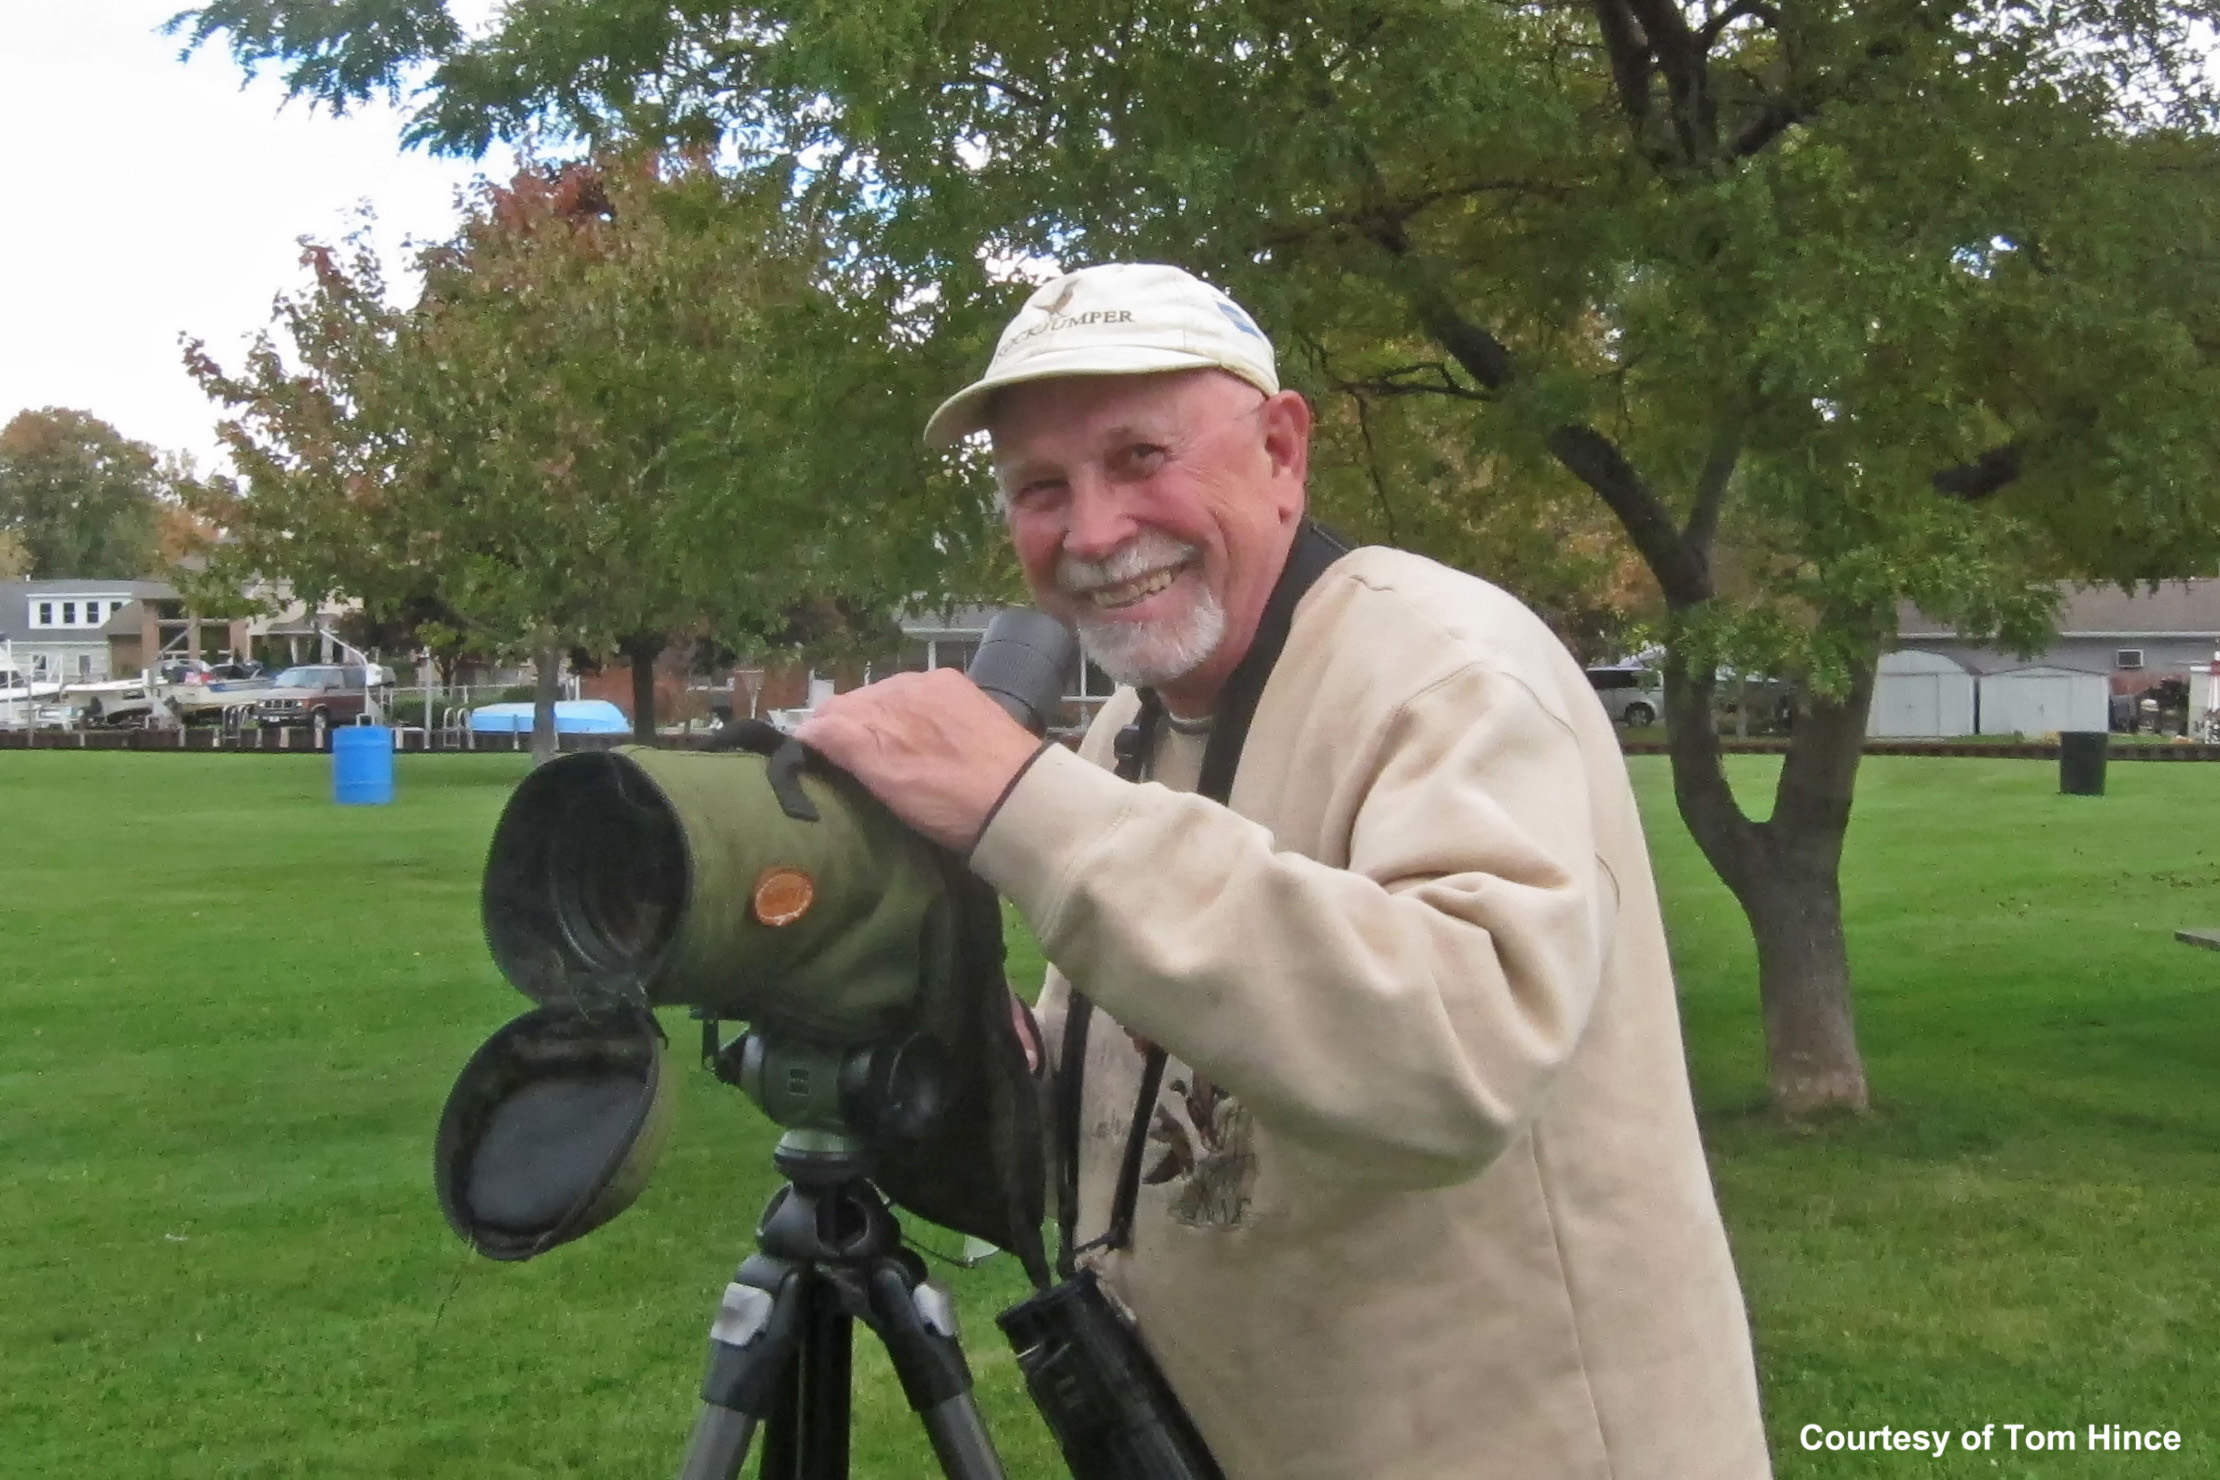 Tom Heatley looking very happy after seeing his 300th bird species lifetime in Macomb County